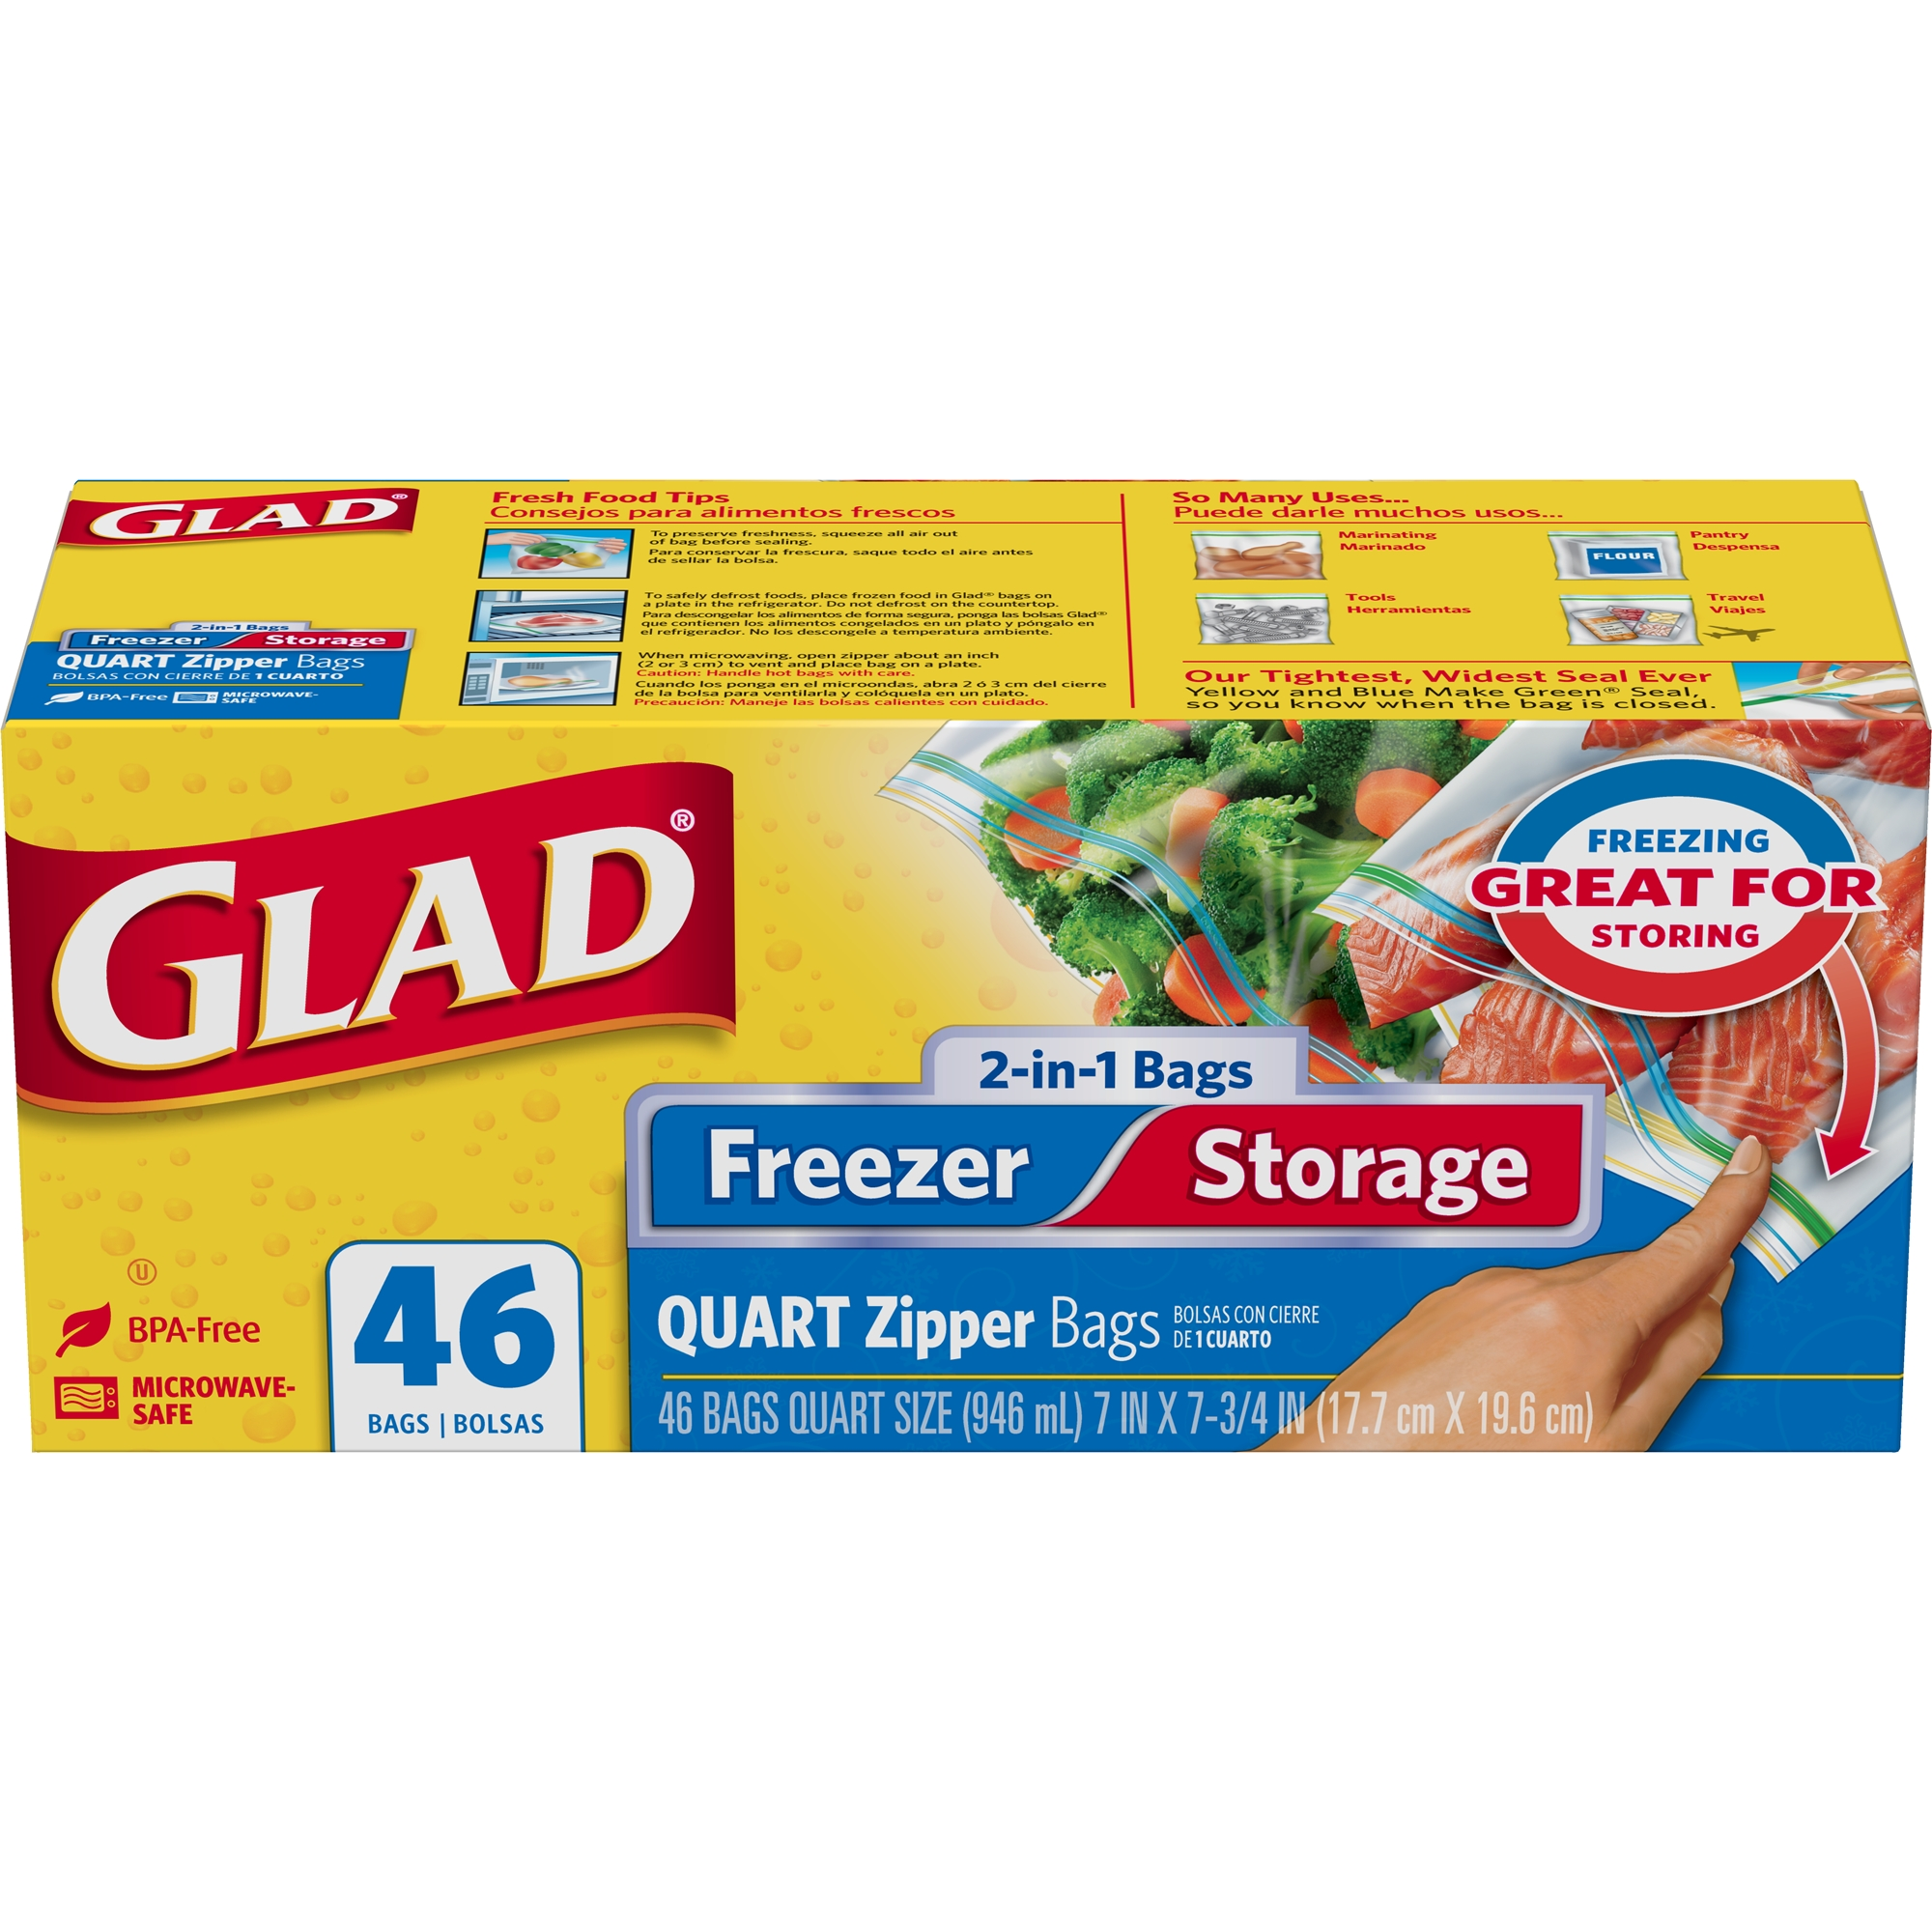 Glad Food Storage and Freezer 2 in 1 Zipper Bags - Quart - 46 ct